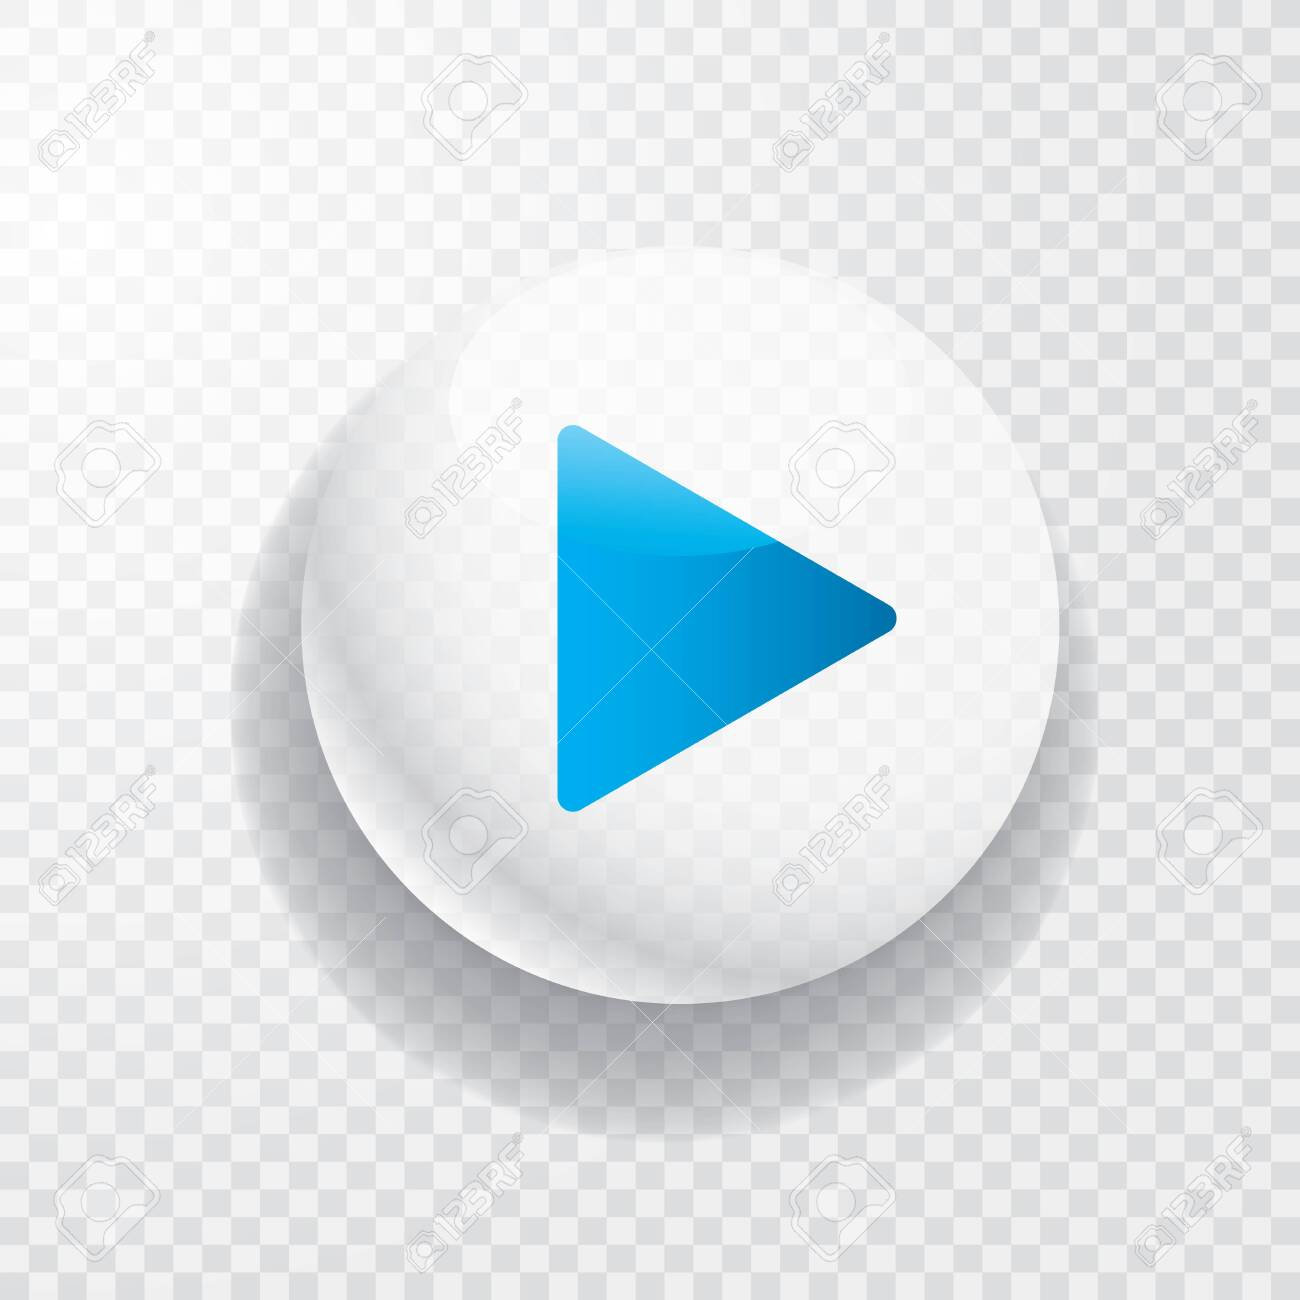 white transparent play button with blue arrow - 137589531